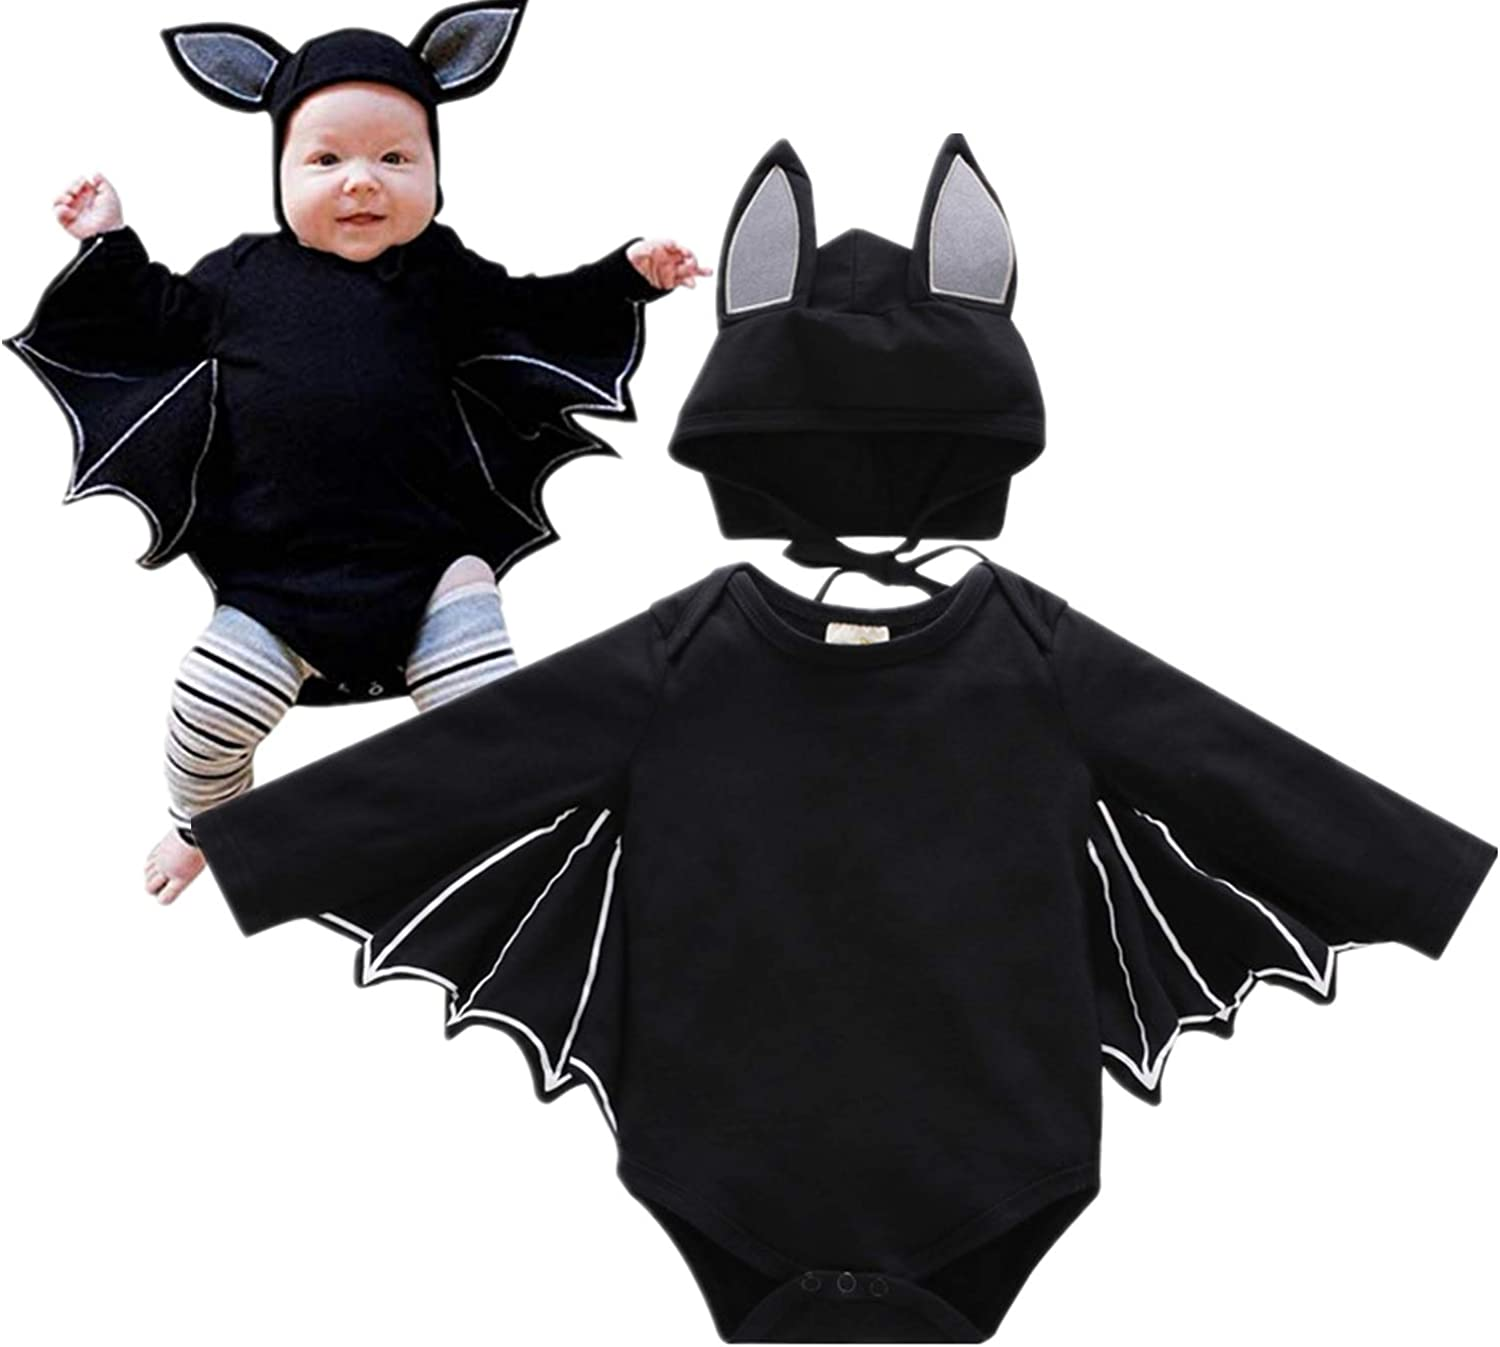 YQWEL Toddler Baby Outfits Set Halloween Batman Cosplay Costume Romper and Hat